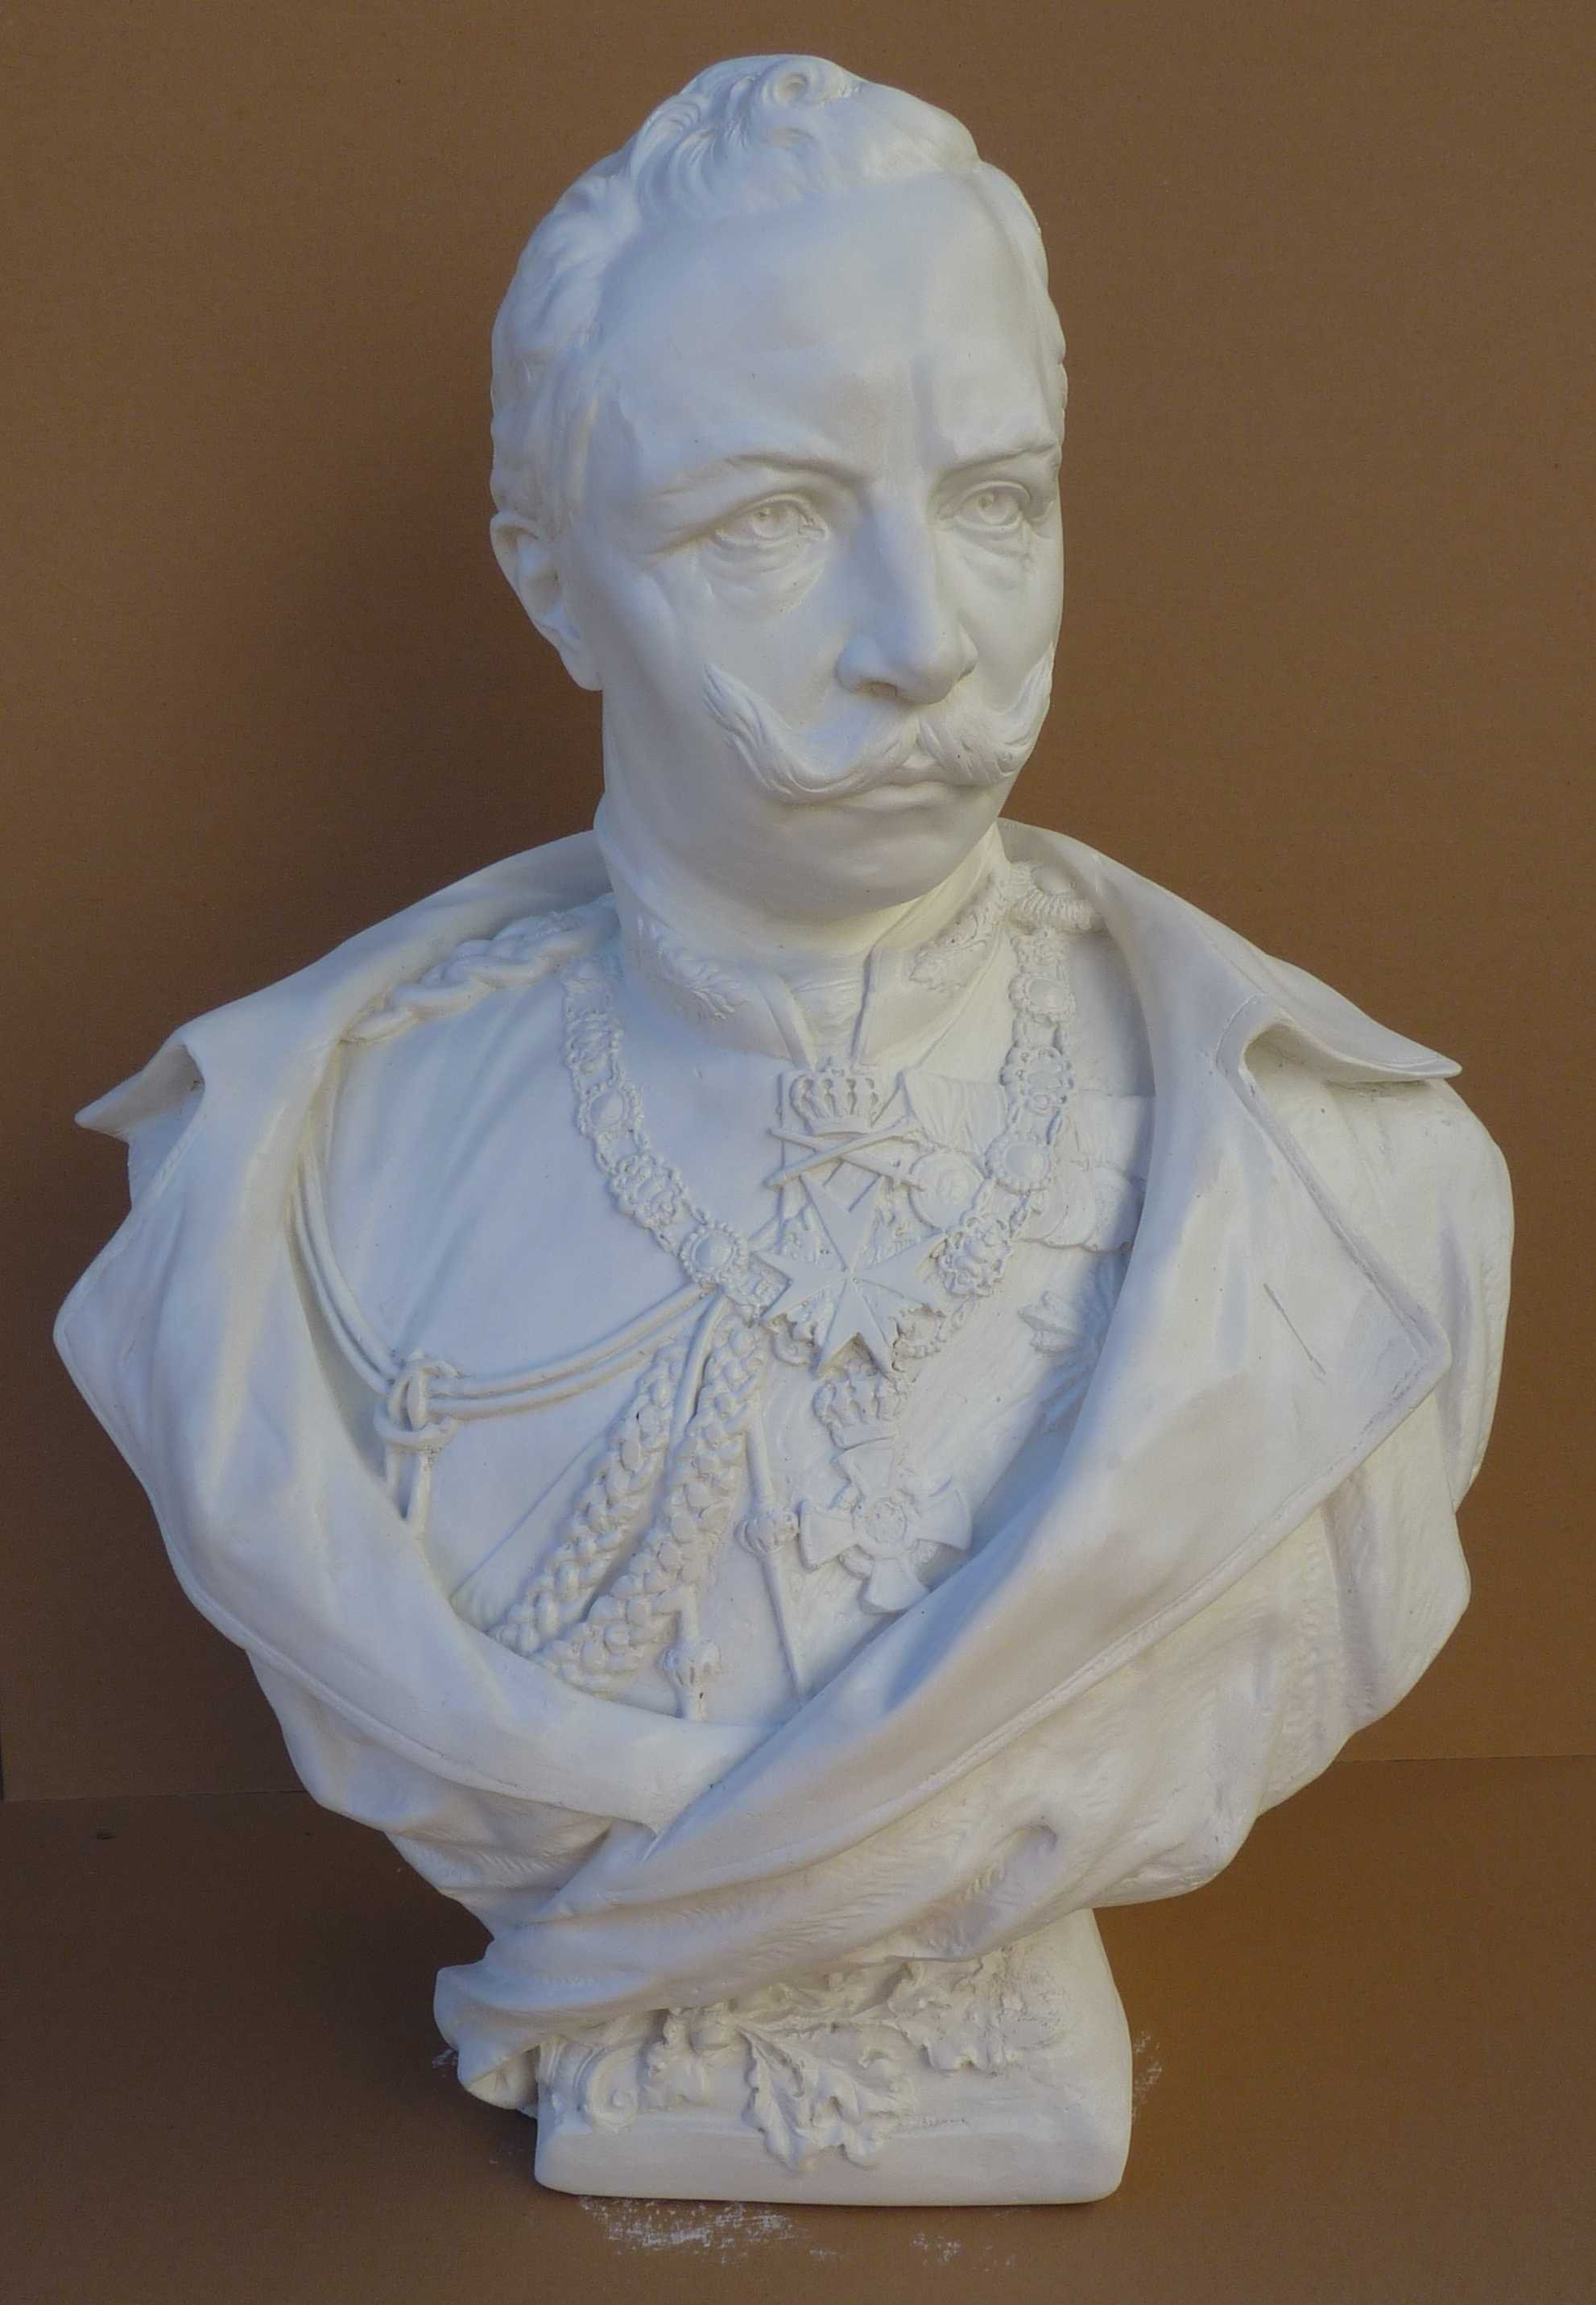 1aa. Bust of the Emperor Wilhelm II.